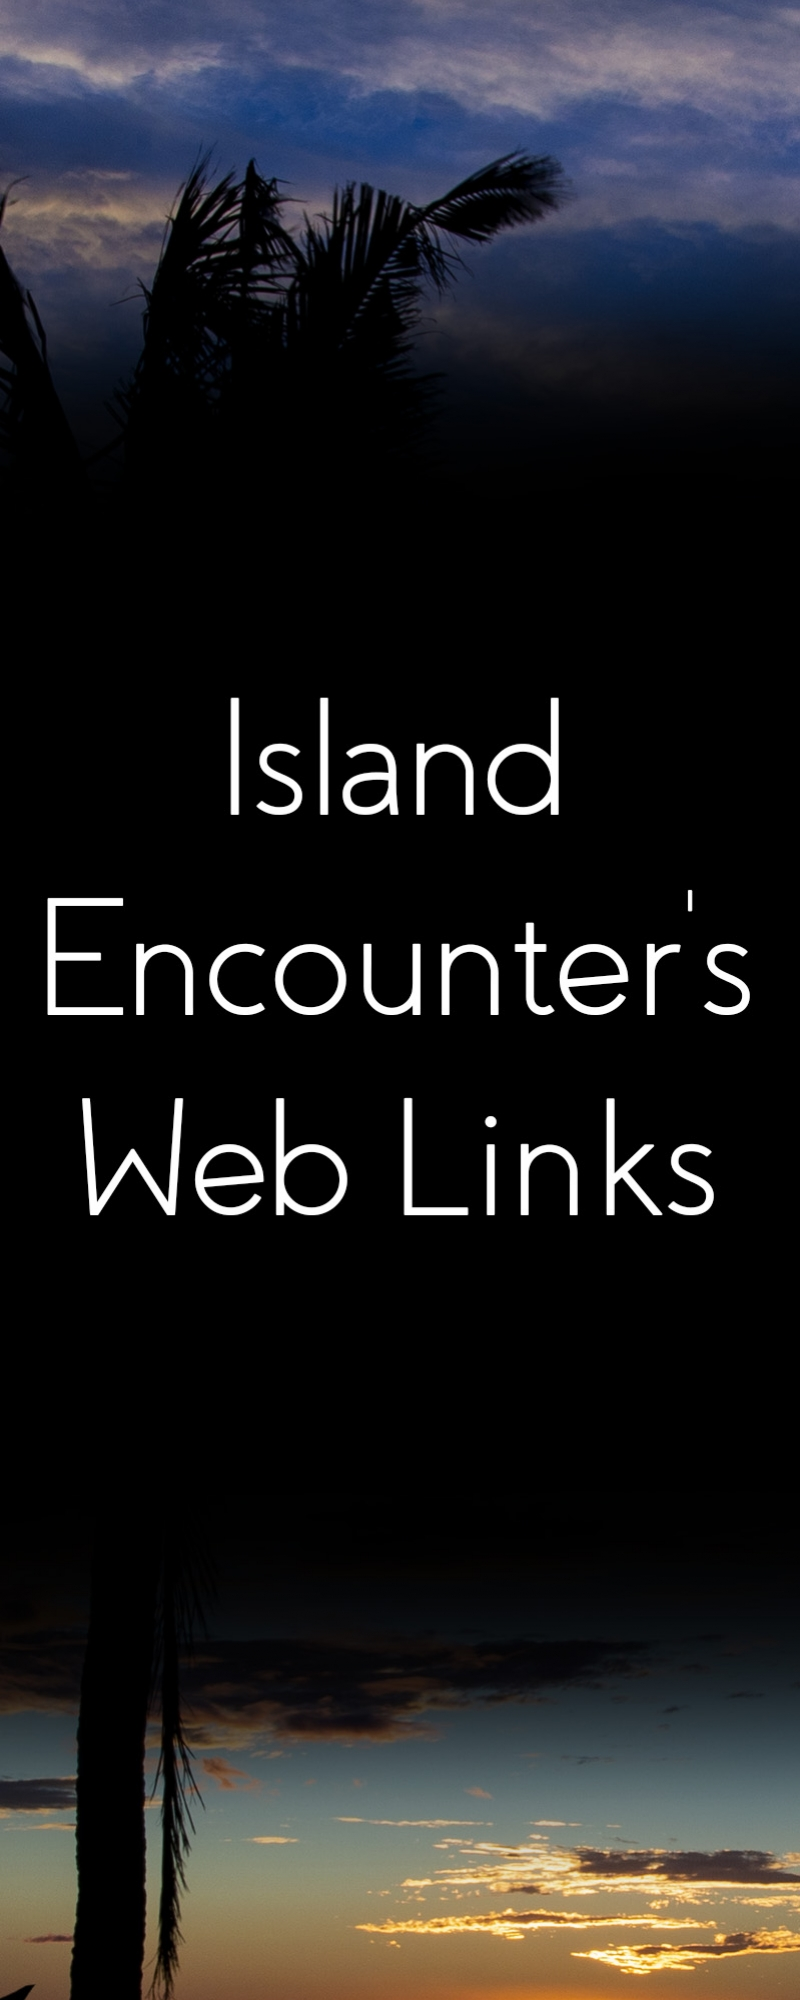 web-links